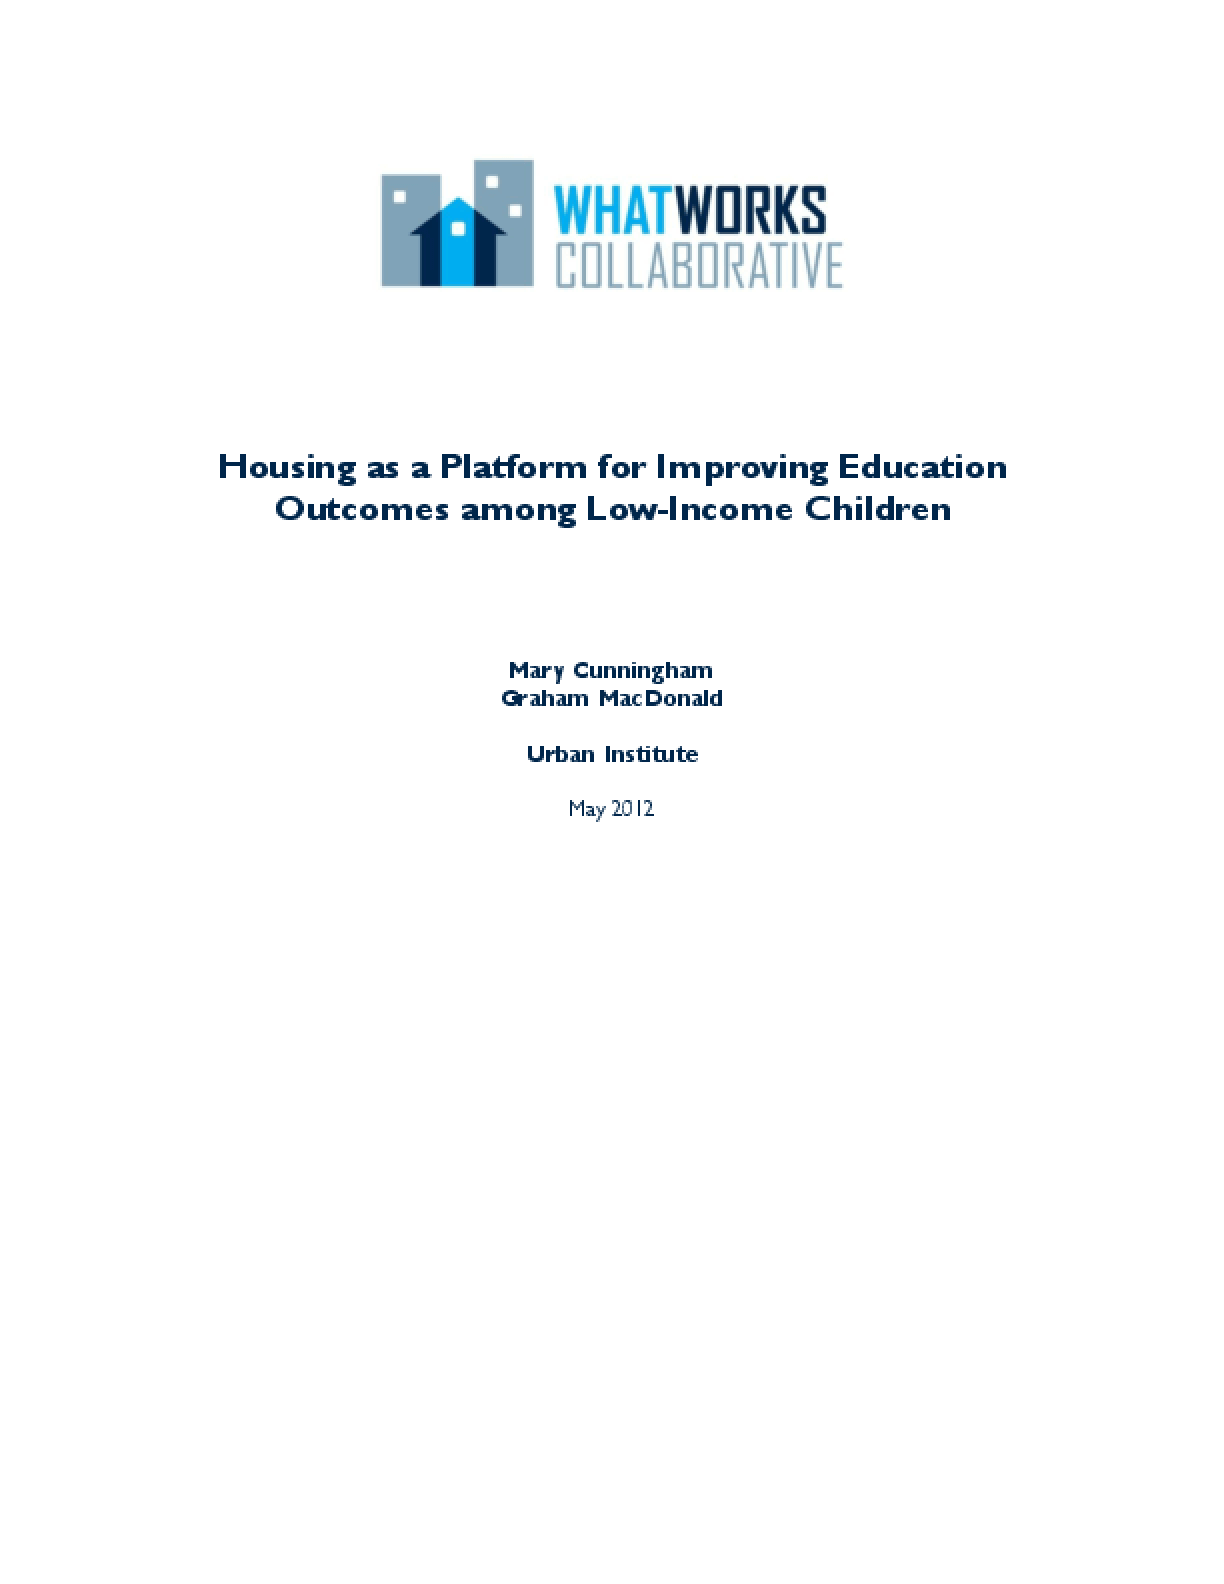 Housing as a Platform for Improving Education Outcomes Among Low-Income Children